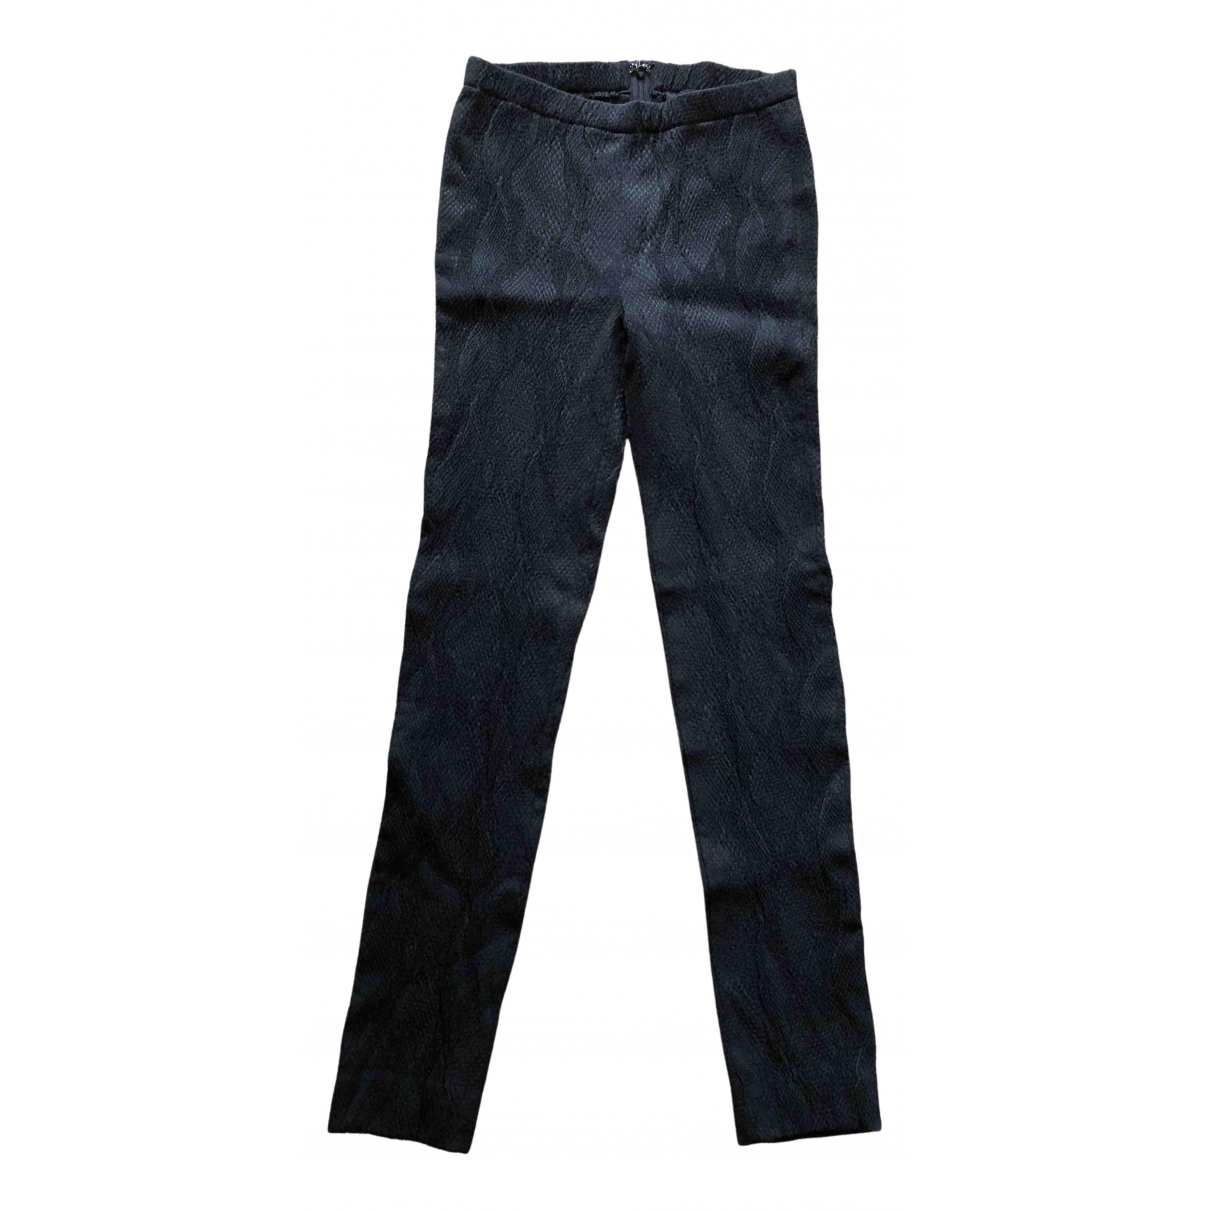 Zadig & Voltaire N Black Cotton Trousers for Women 38 FR